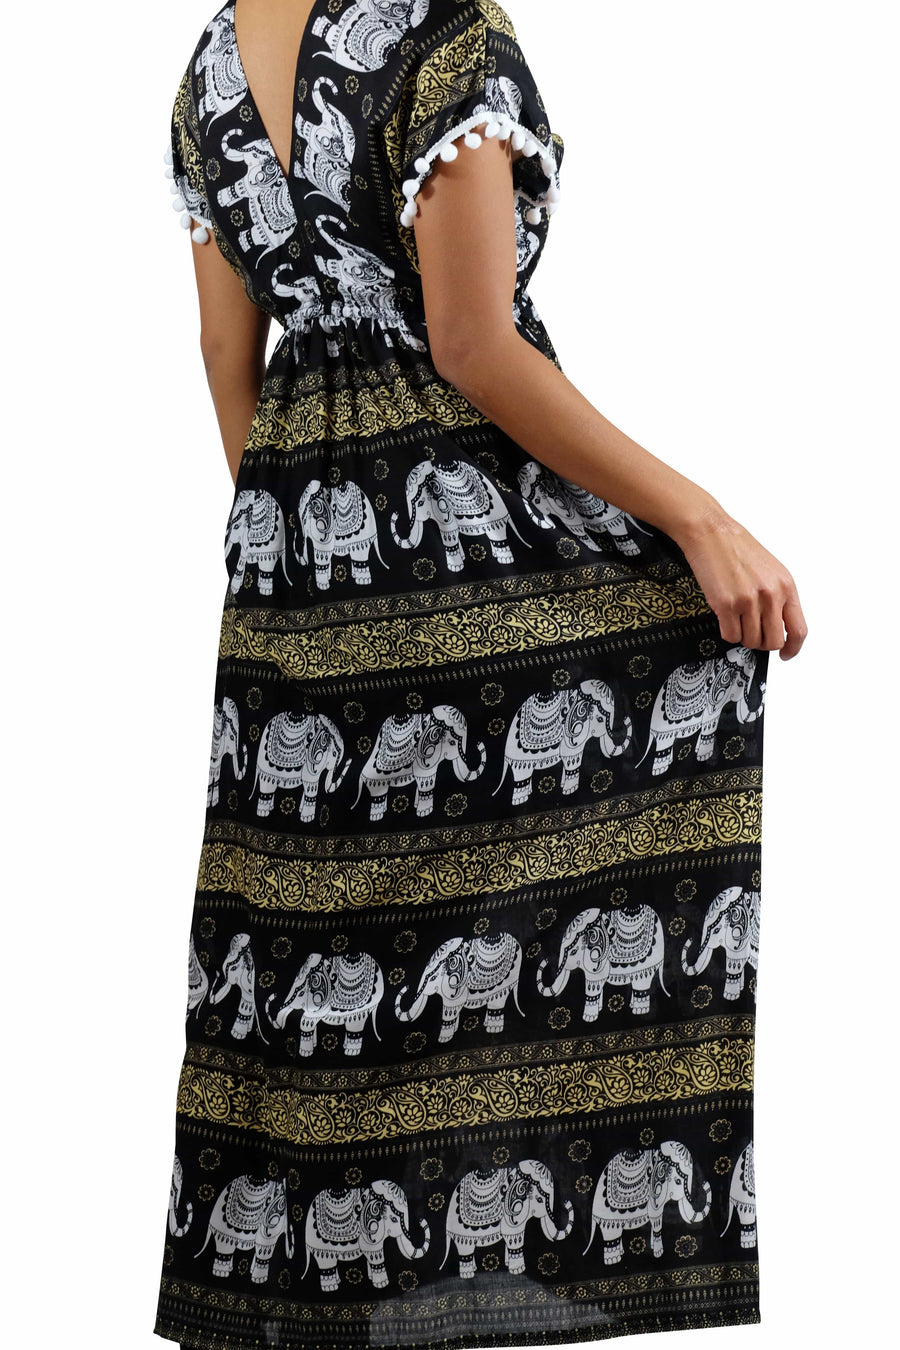 Elephant Shirt Store Dress Chang Colorful Bohemian Style Black